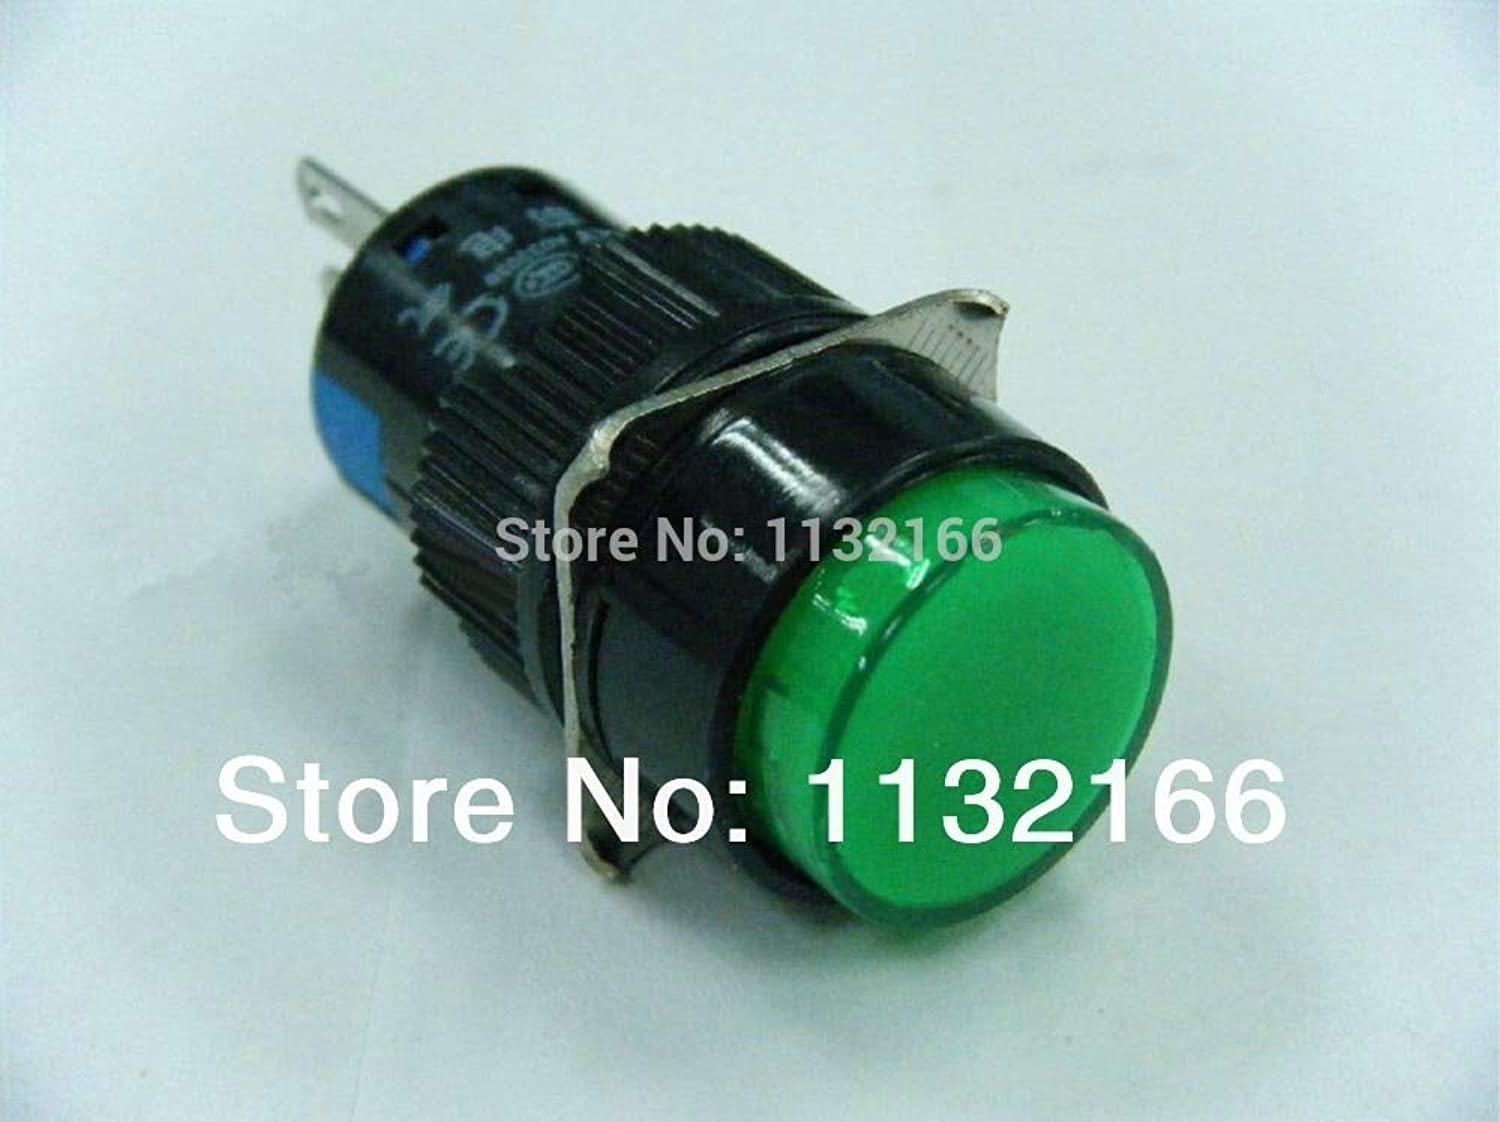 10pcs 6V 12V 24V 110V 220V for Choose Pilot Light Lamp 16mm Hole Green 1NO 1NC Contact 5 Pin SPST Momentary Push Button Switch